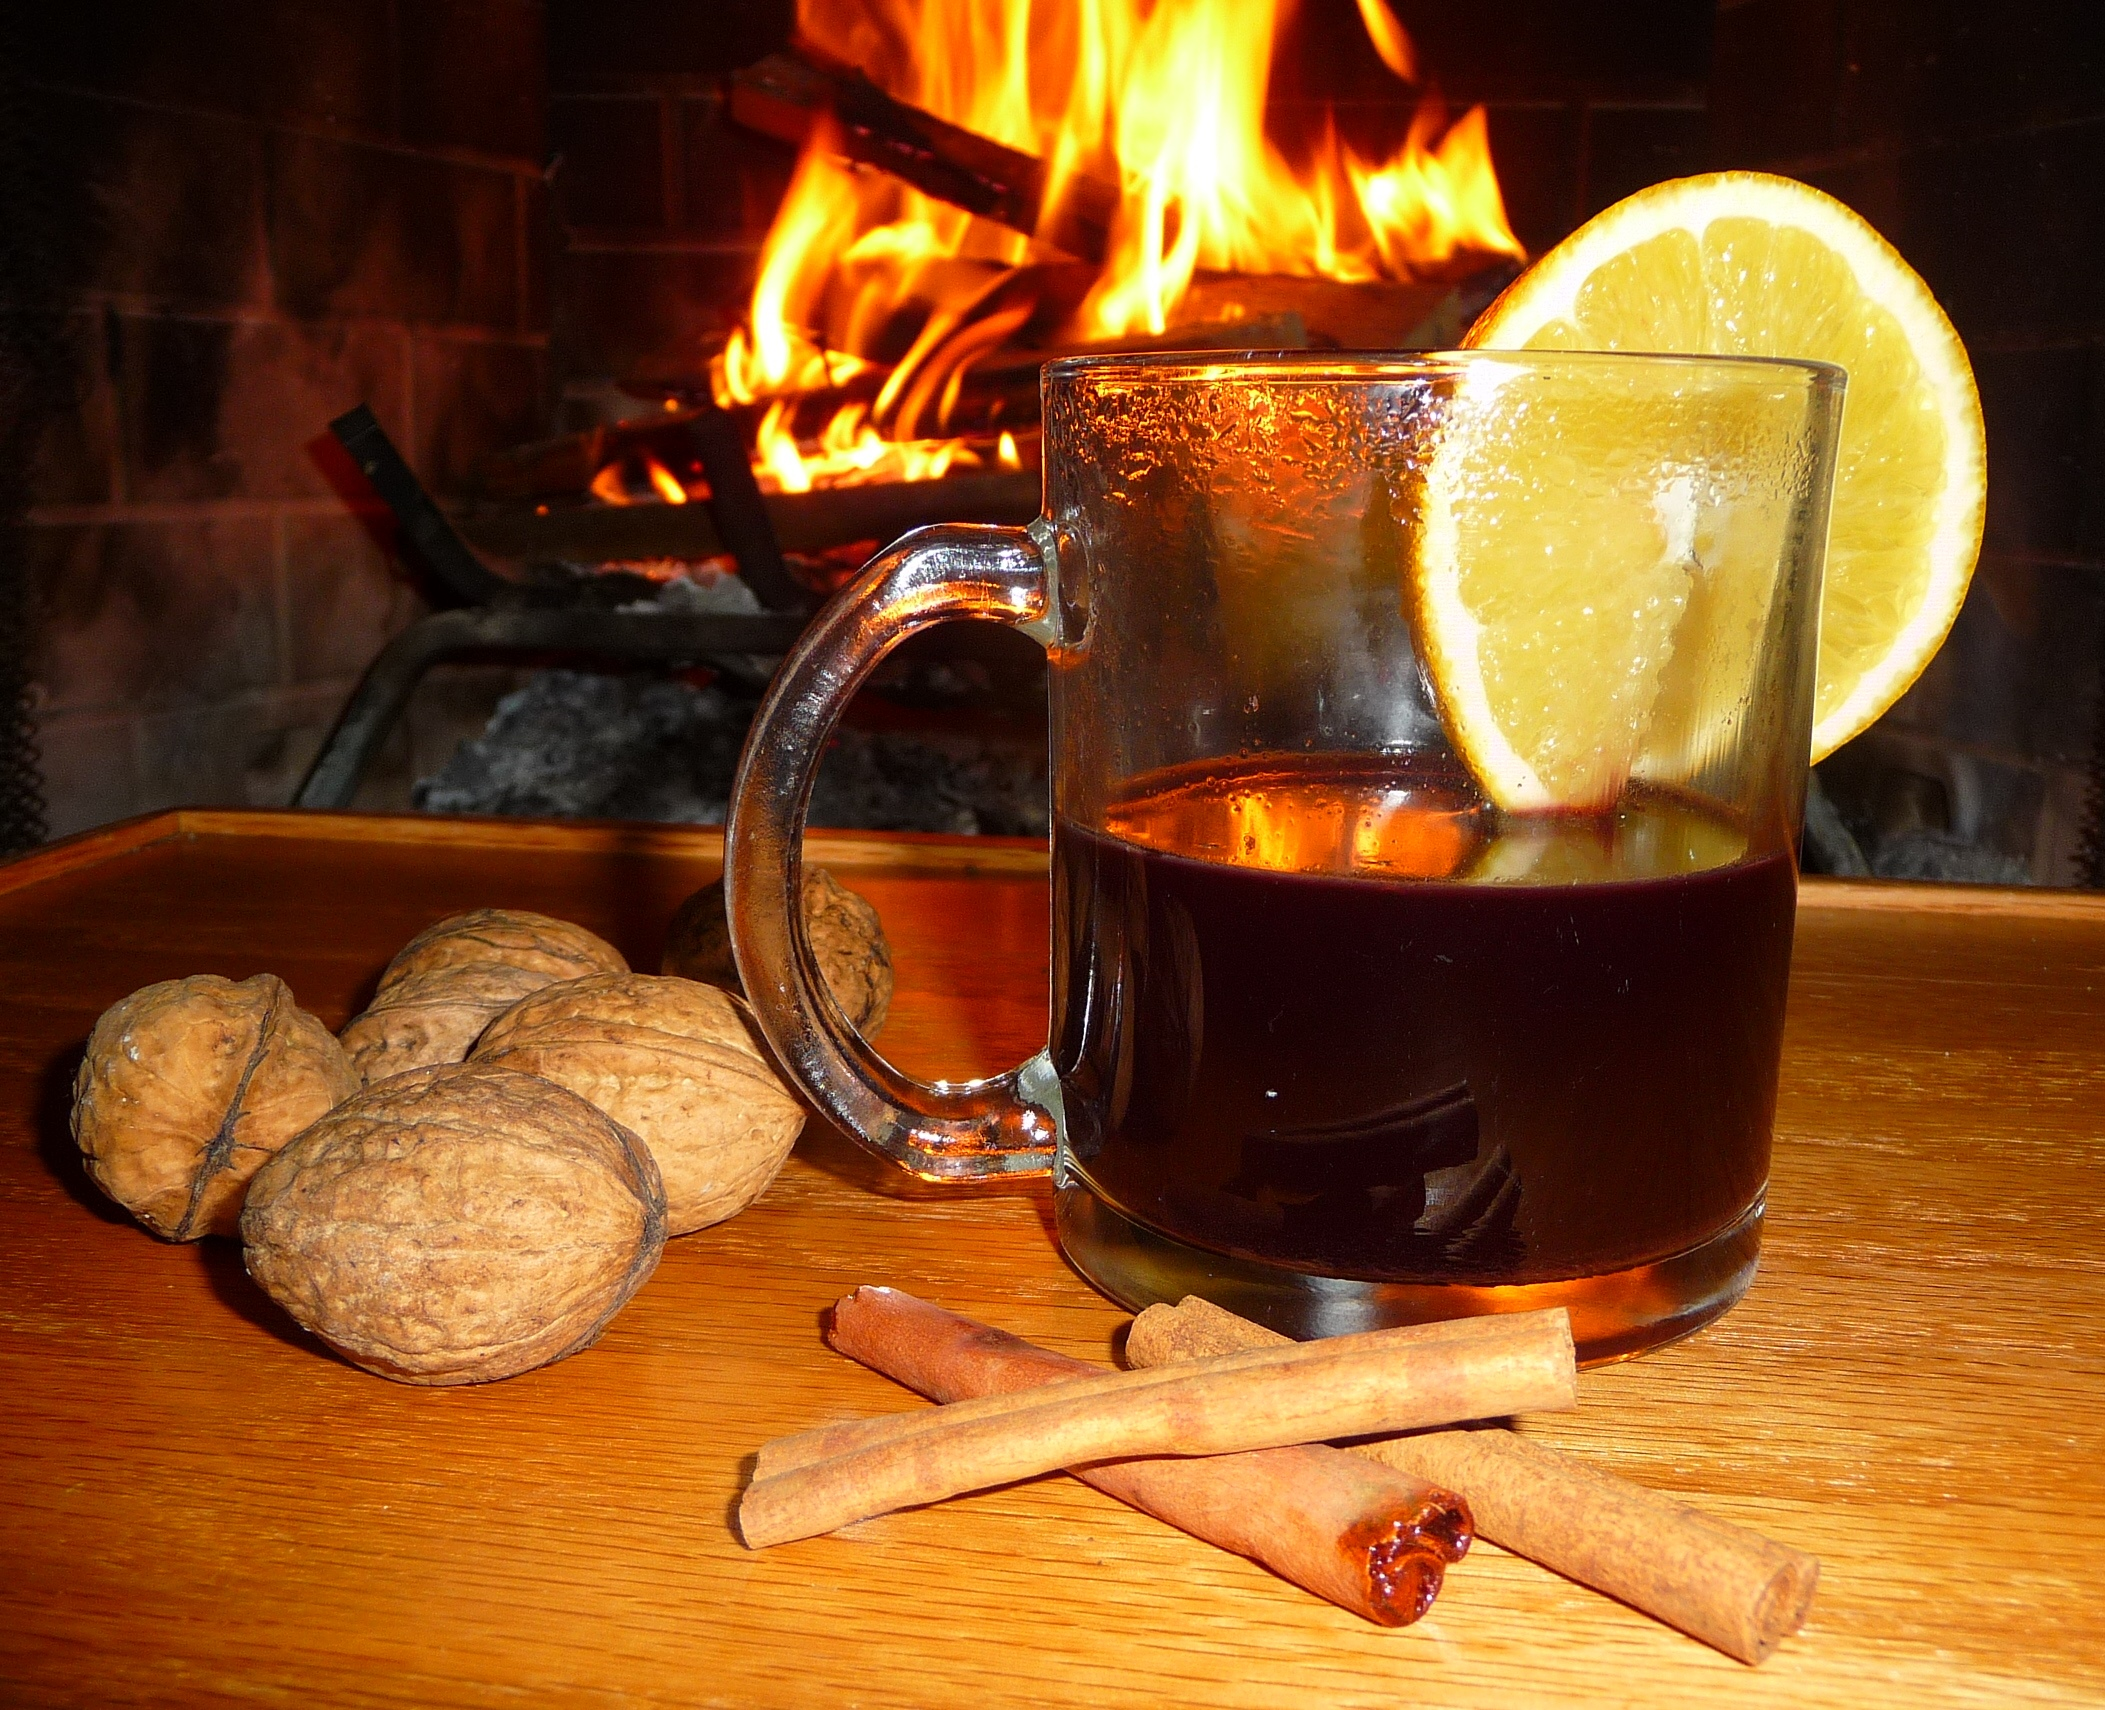 A mug of mulled wine and a crackling fire are the perfect combination to take the chill off a wet fall day.